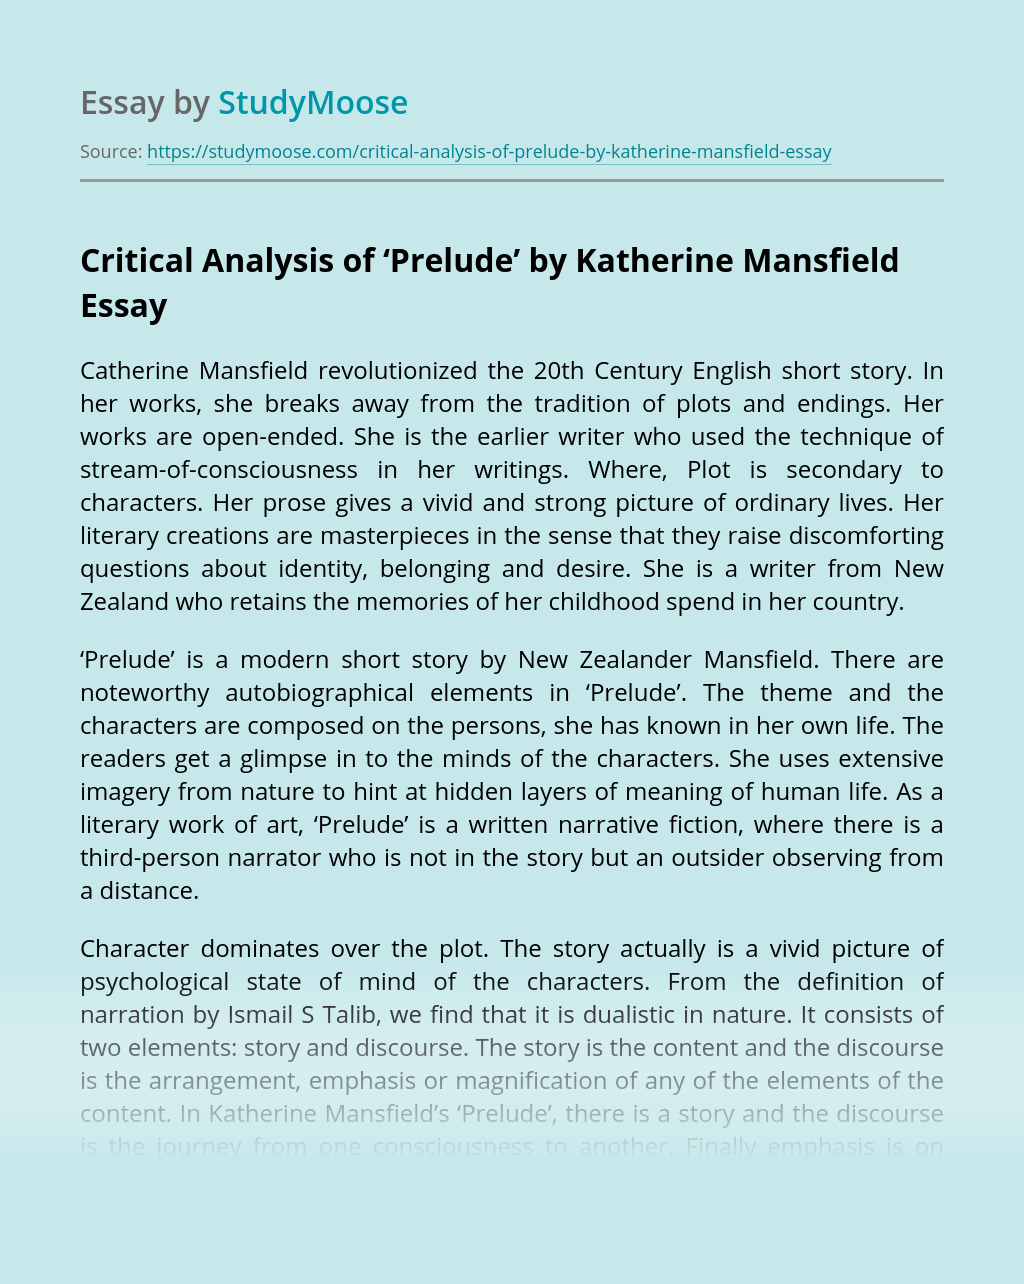 Critical Analysis of 'Prelude' by Katherine Mansfield